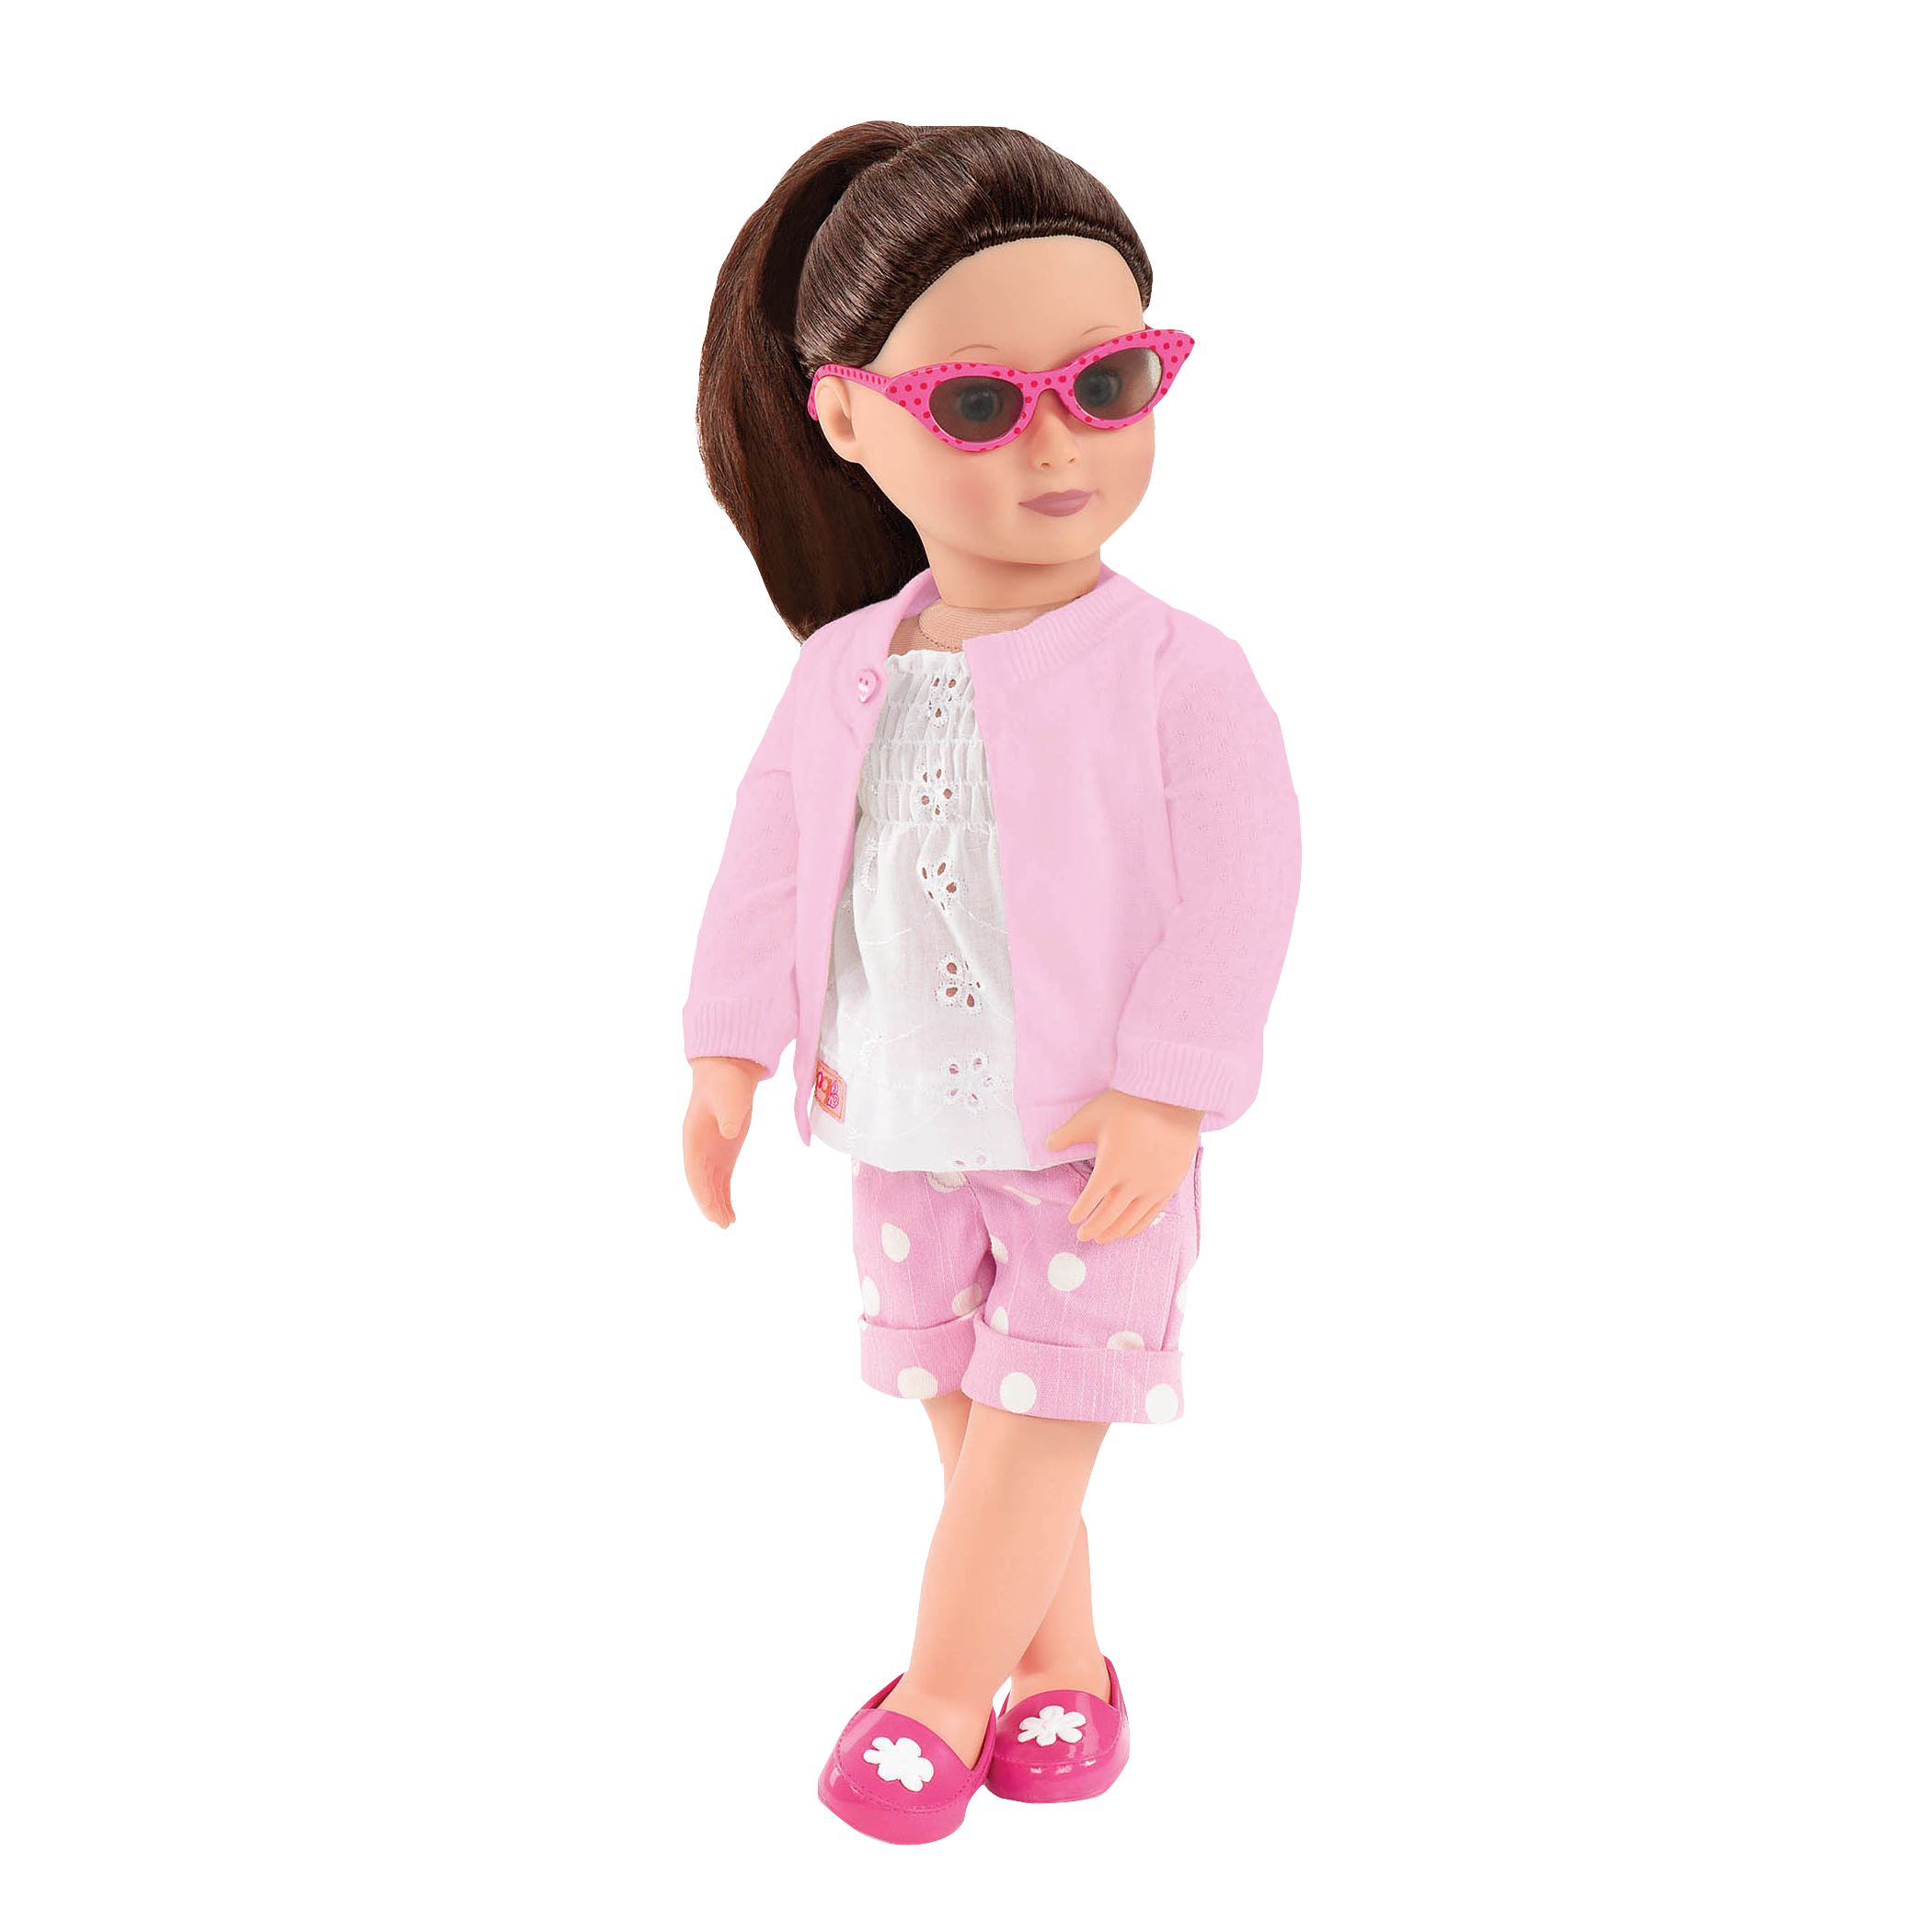 All Eyelets On Me Willow doll wearing outfit